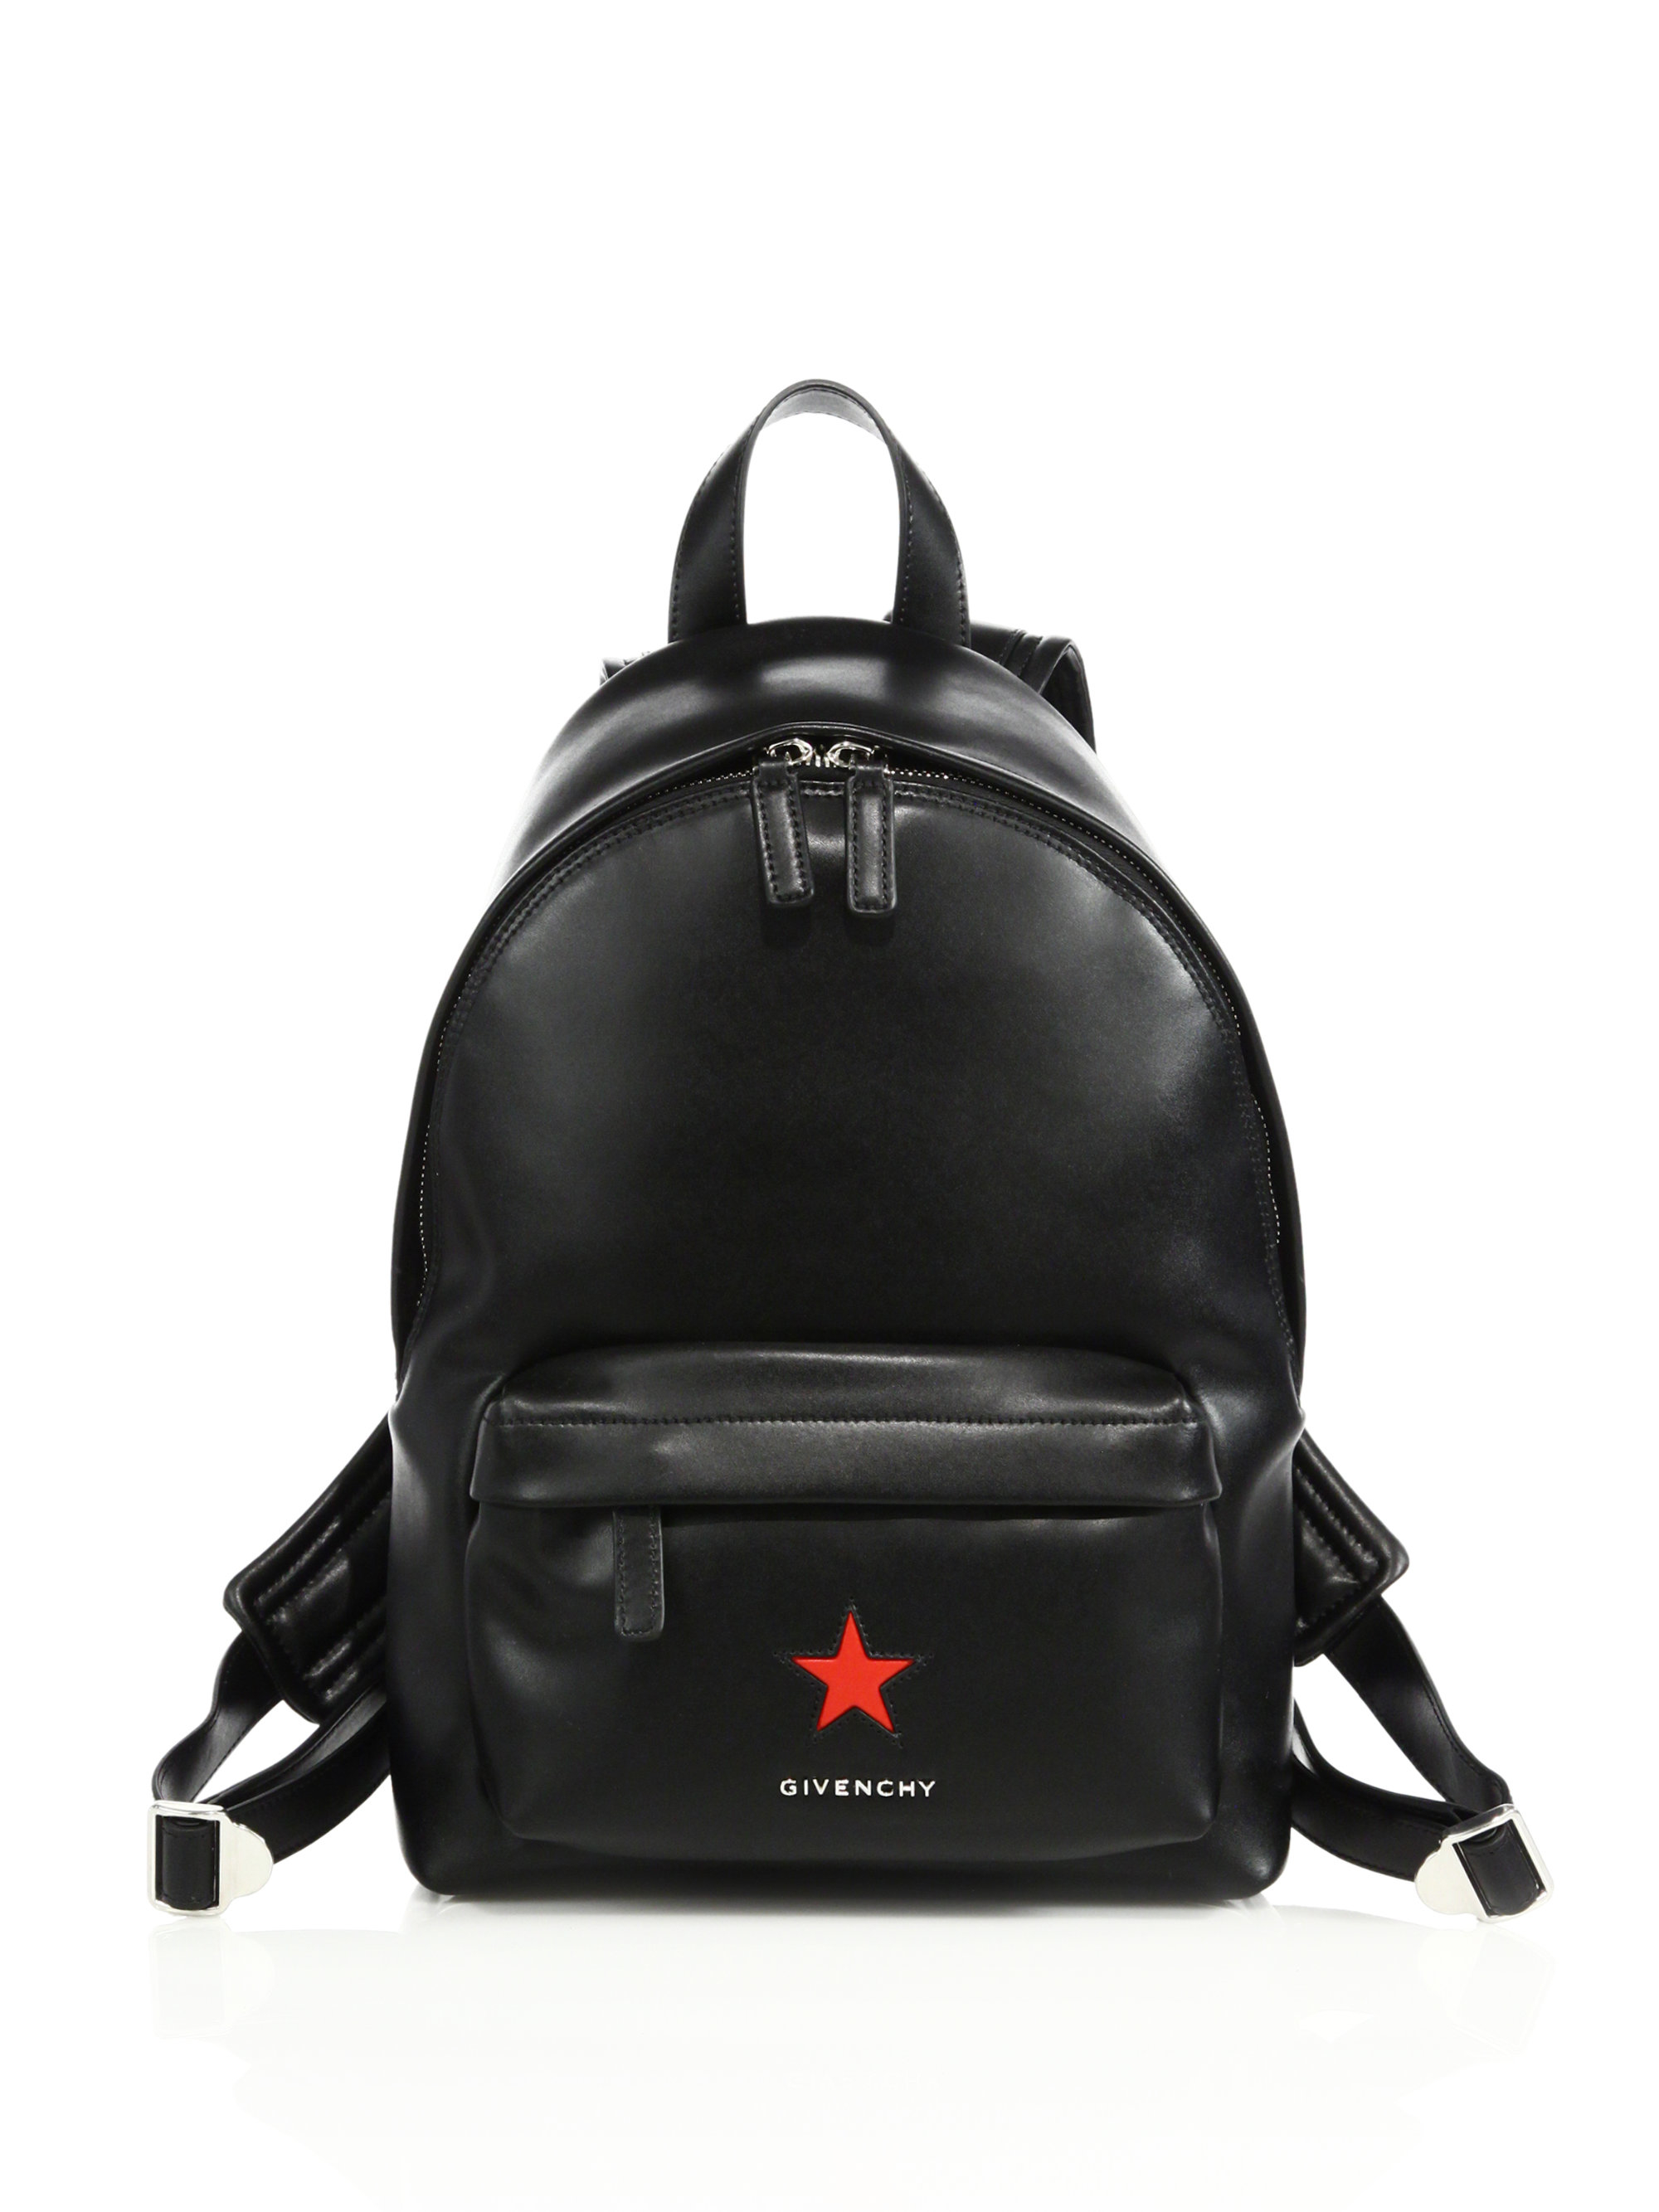 07a7c7b1d513 Givenchy Backpack